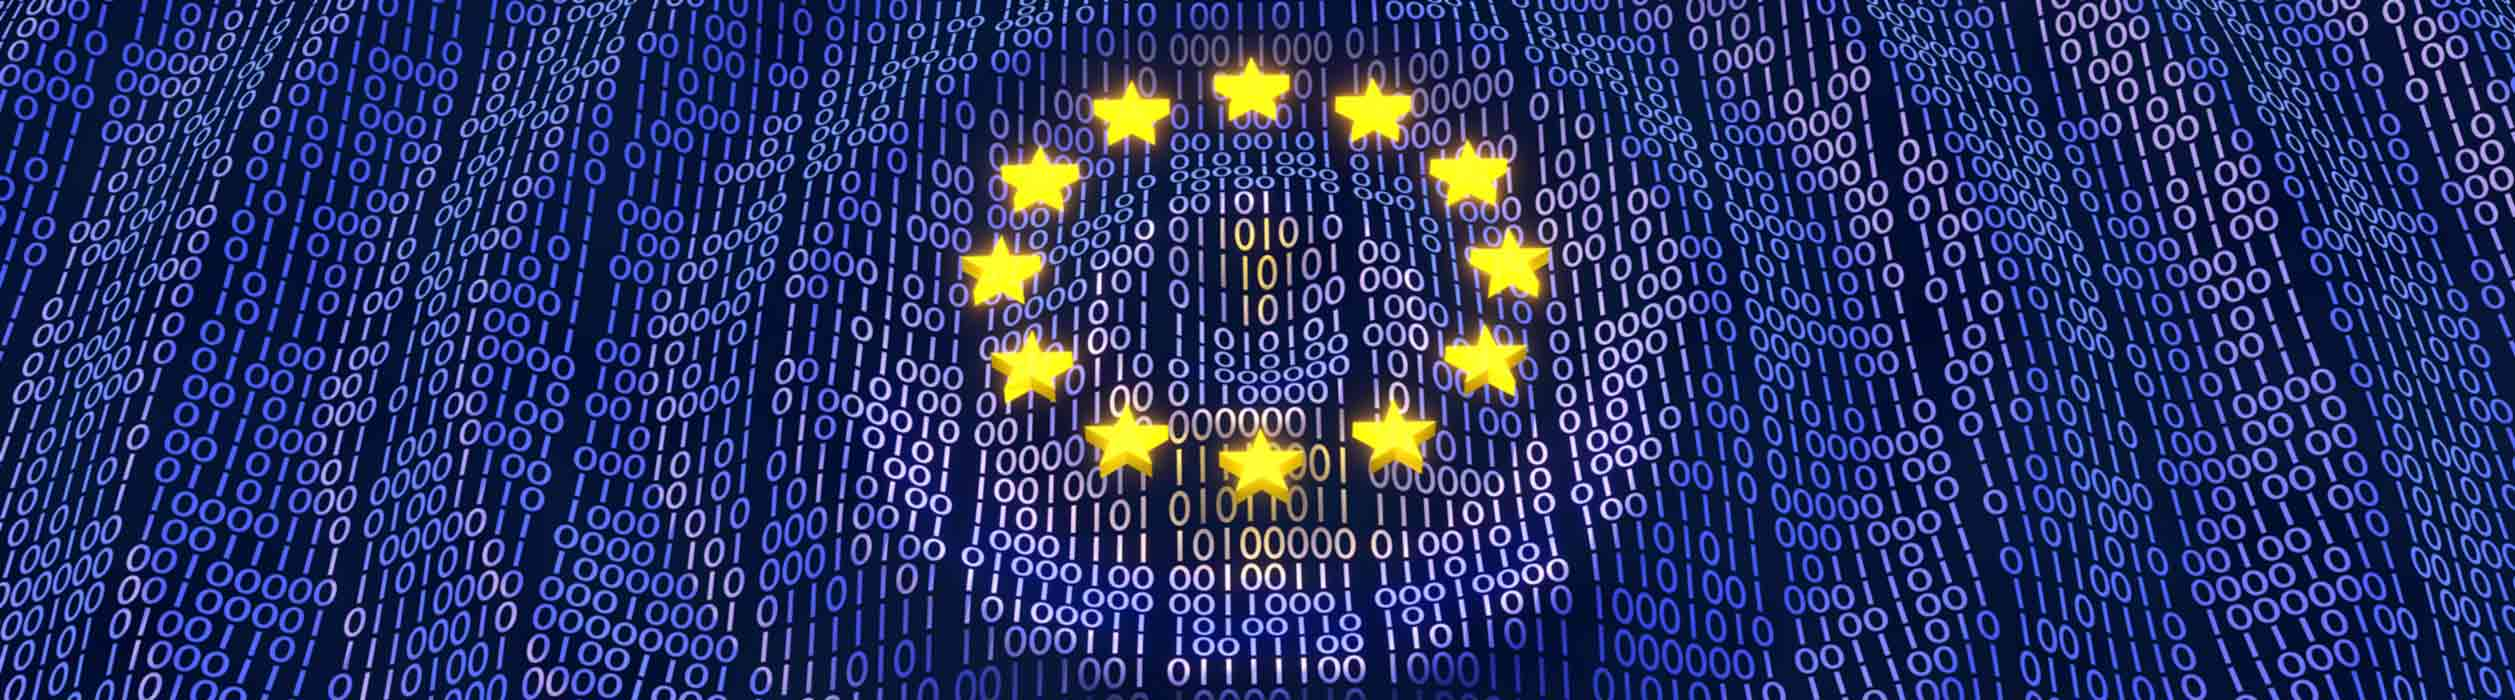 The European flag formed of binary code. This is to highlight the importance of the Safer Internet Day and to provide internet security tips for transport companies, forwarders and carriers.